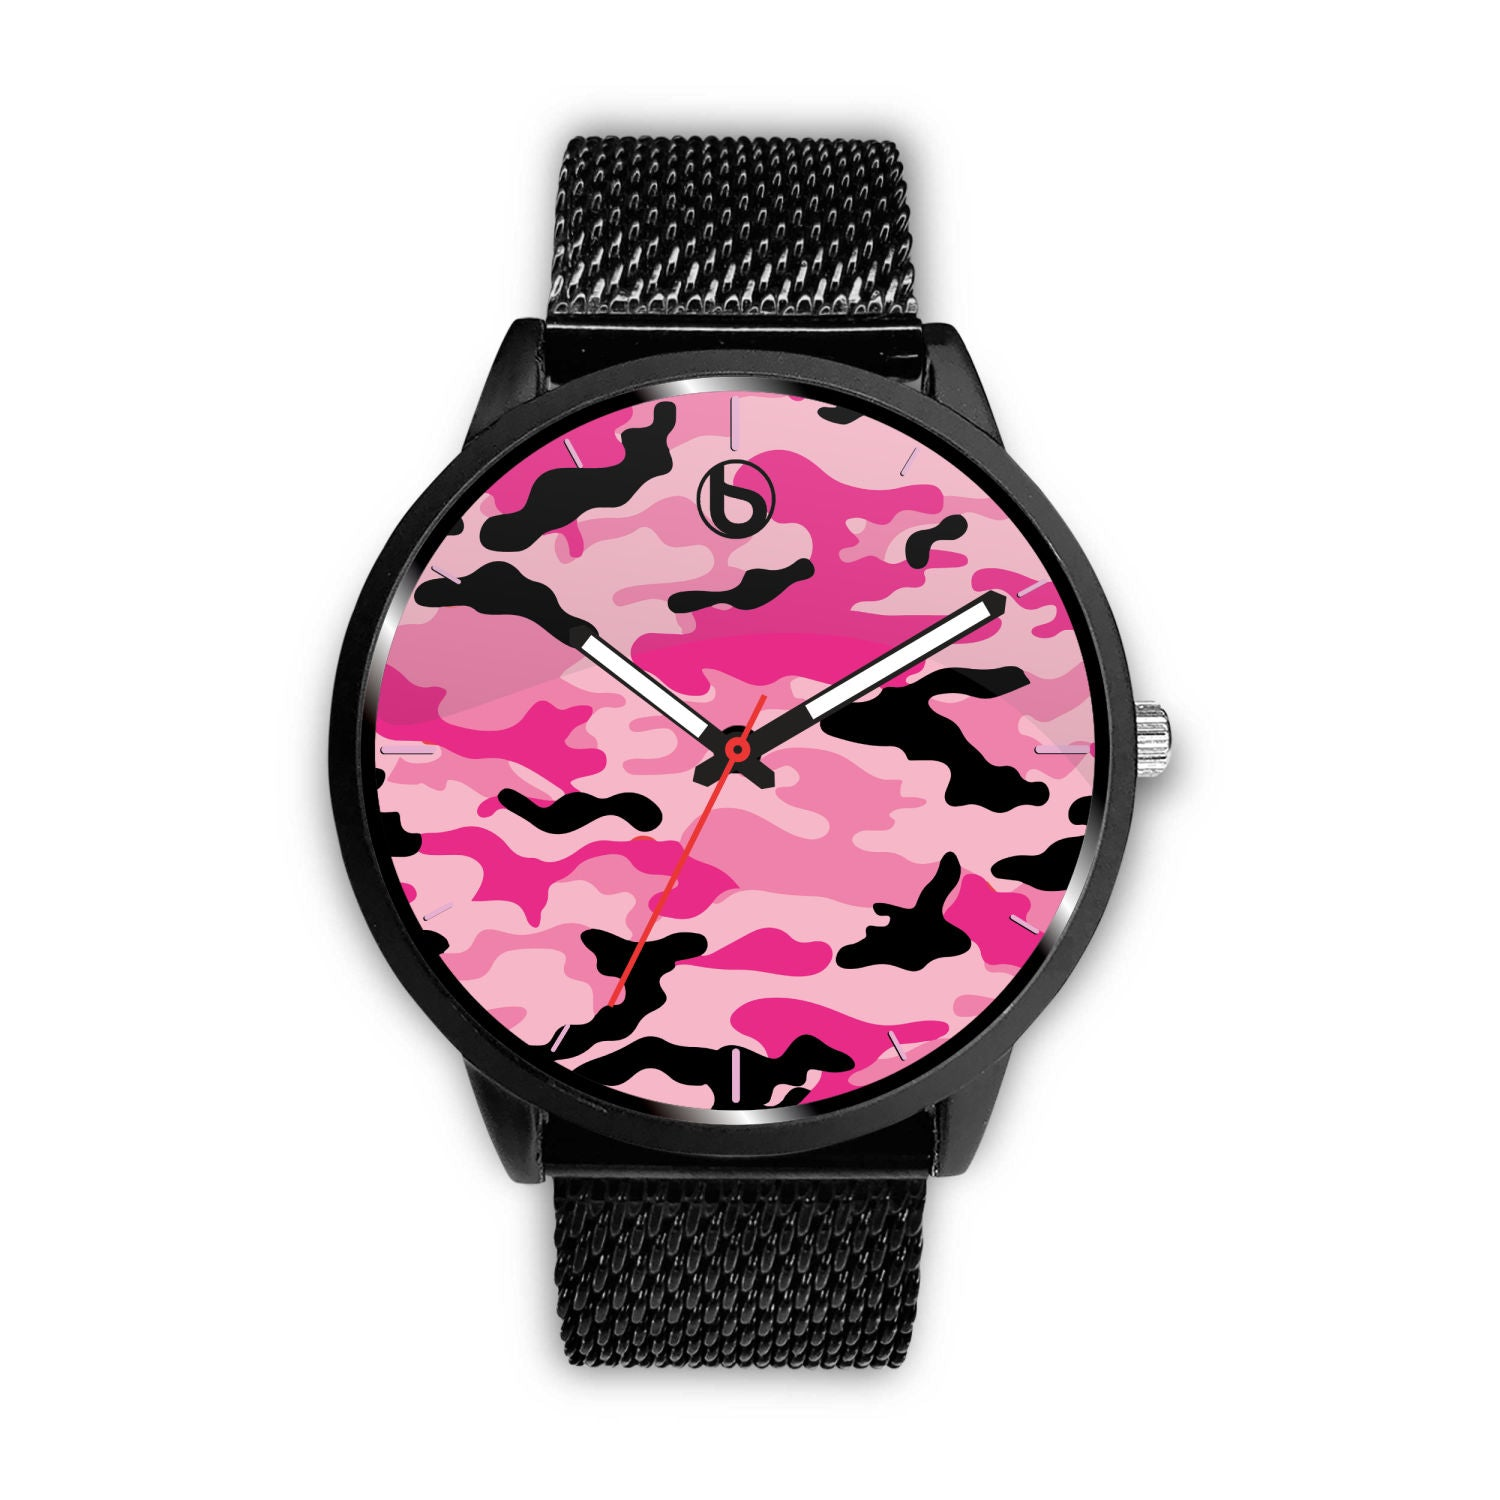 Bumperize Pink Camo Watch